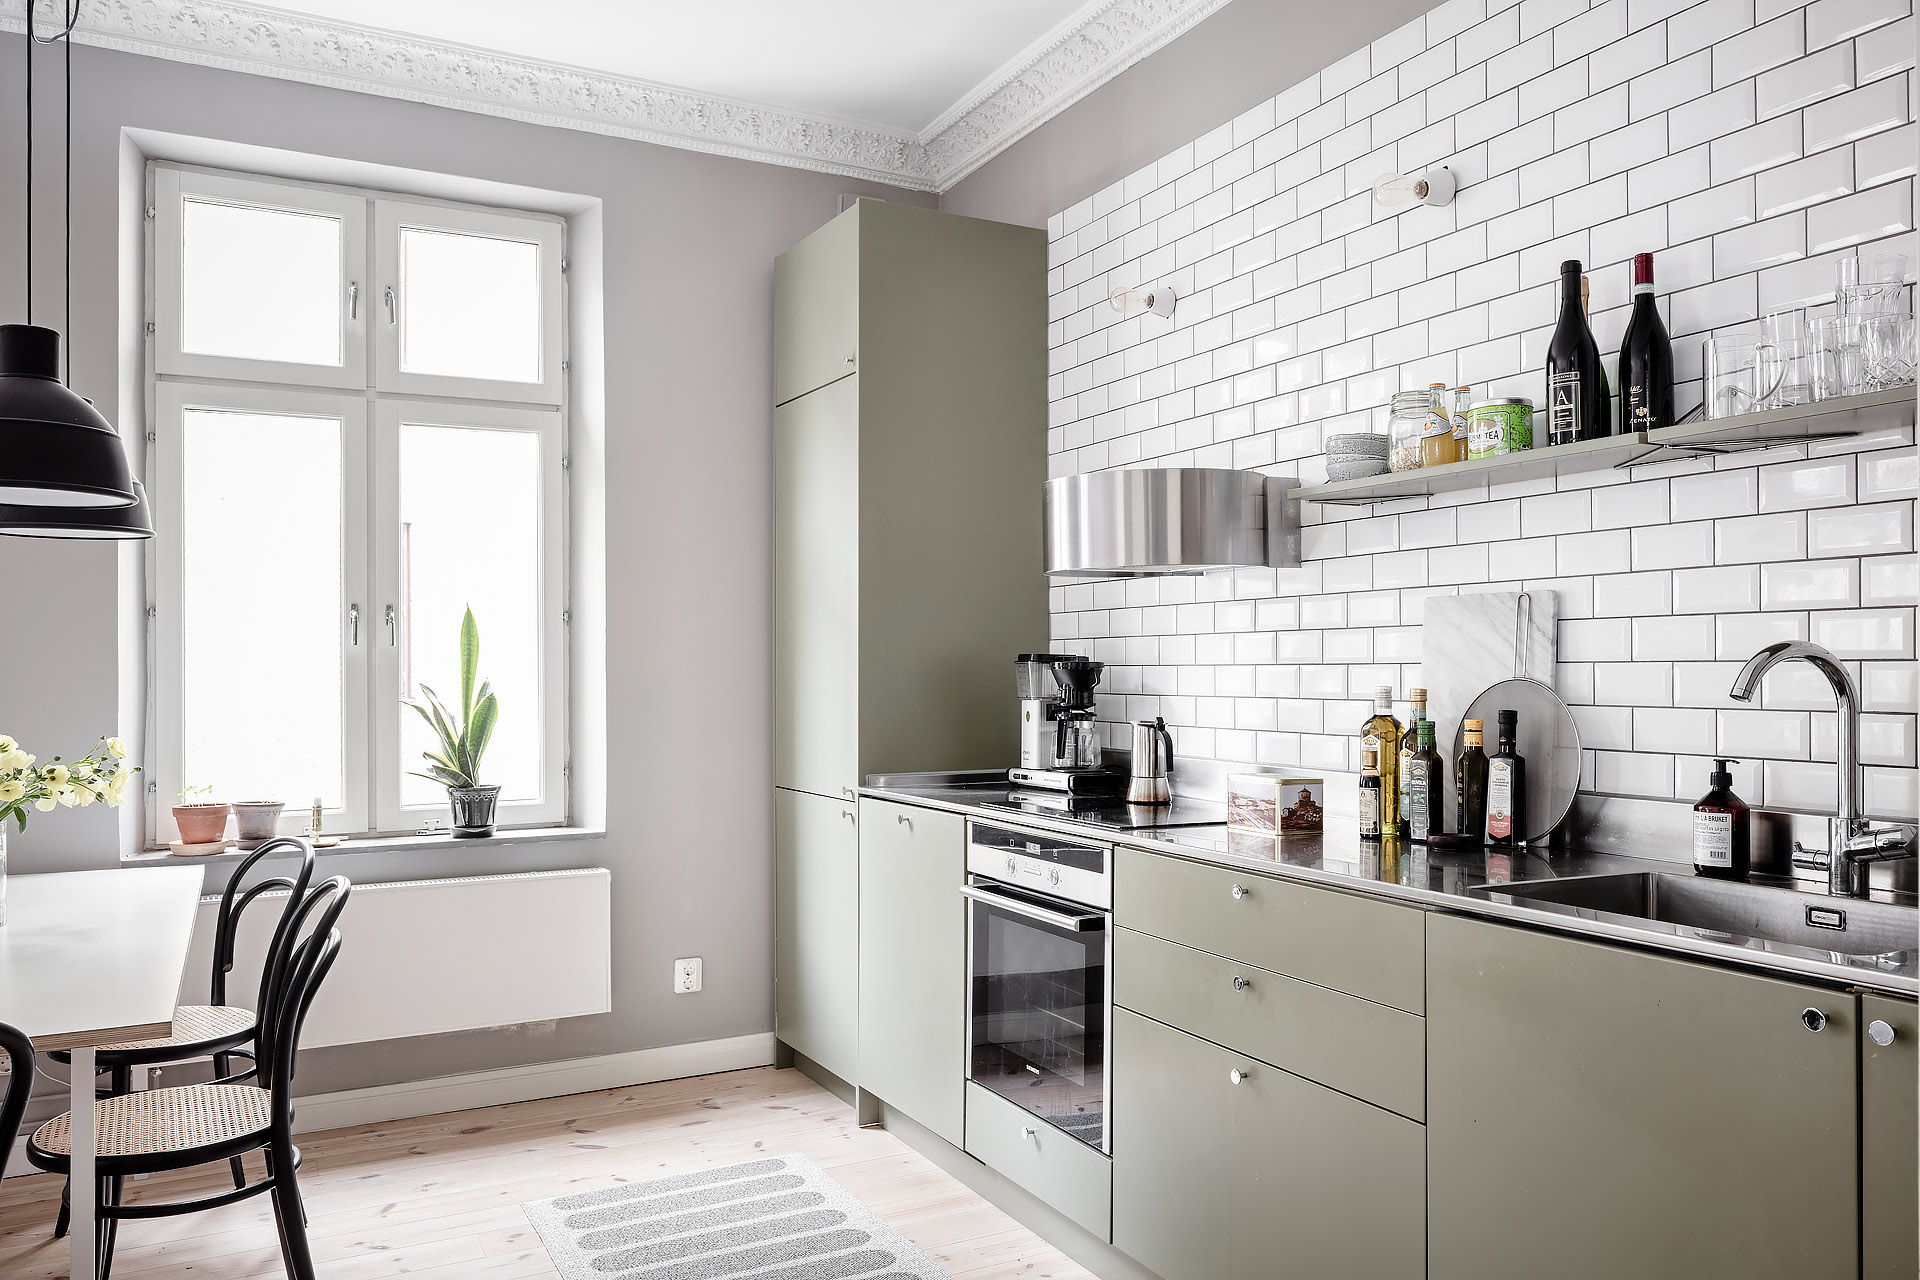 Gorgeous grey home with an olive kitchen - COCO LAPINE ...